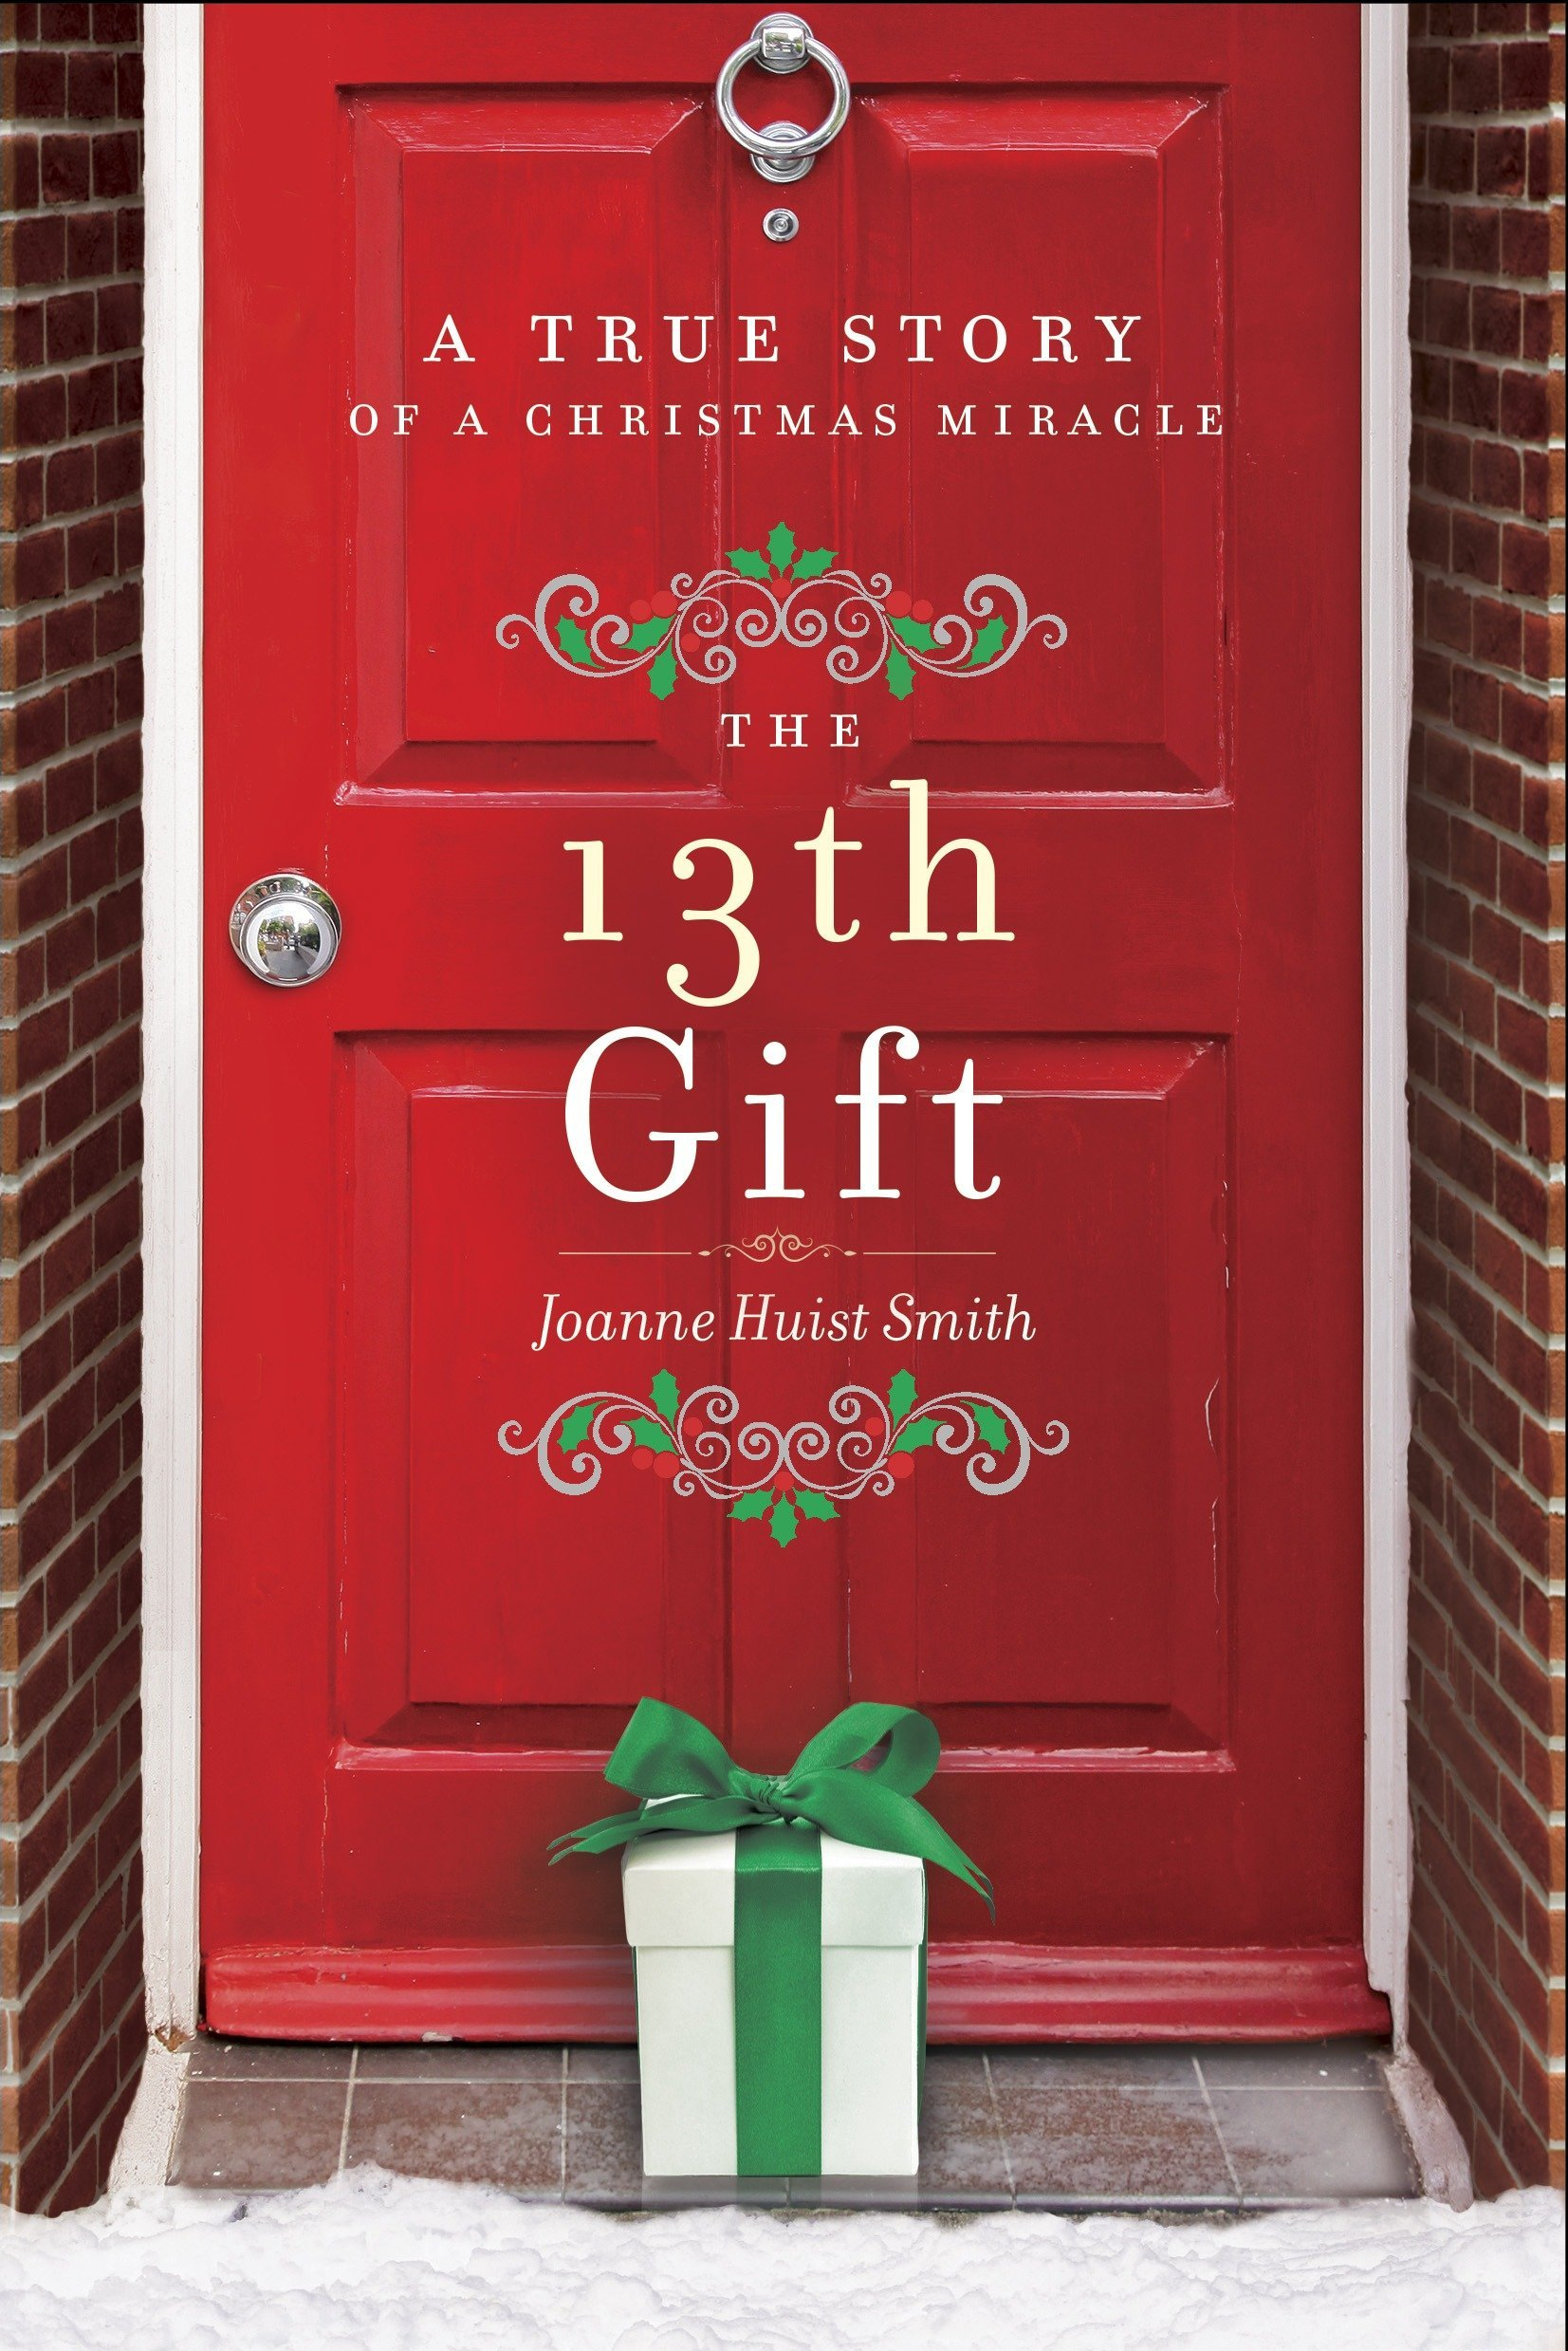 A Gift For Christmas Story.The 13th Gift A True Story Of A Christmas Miracle Joanne